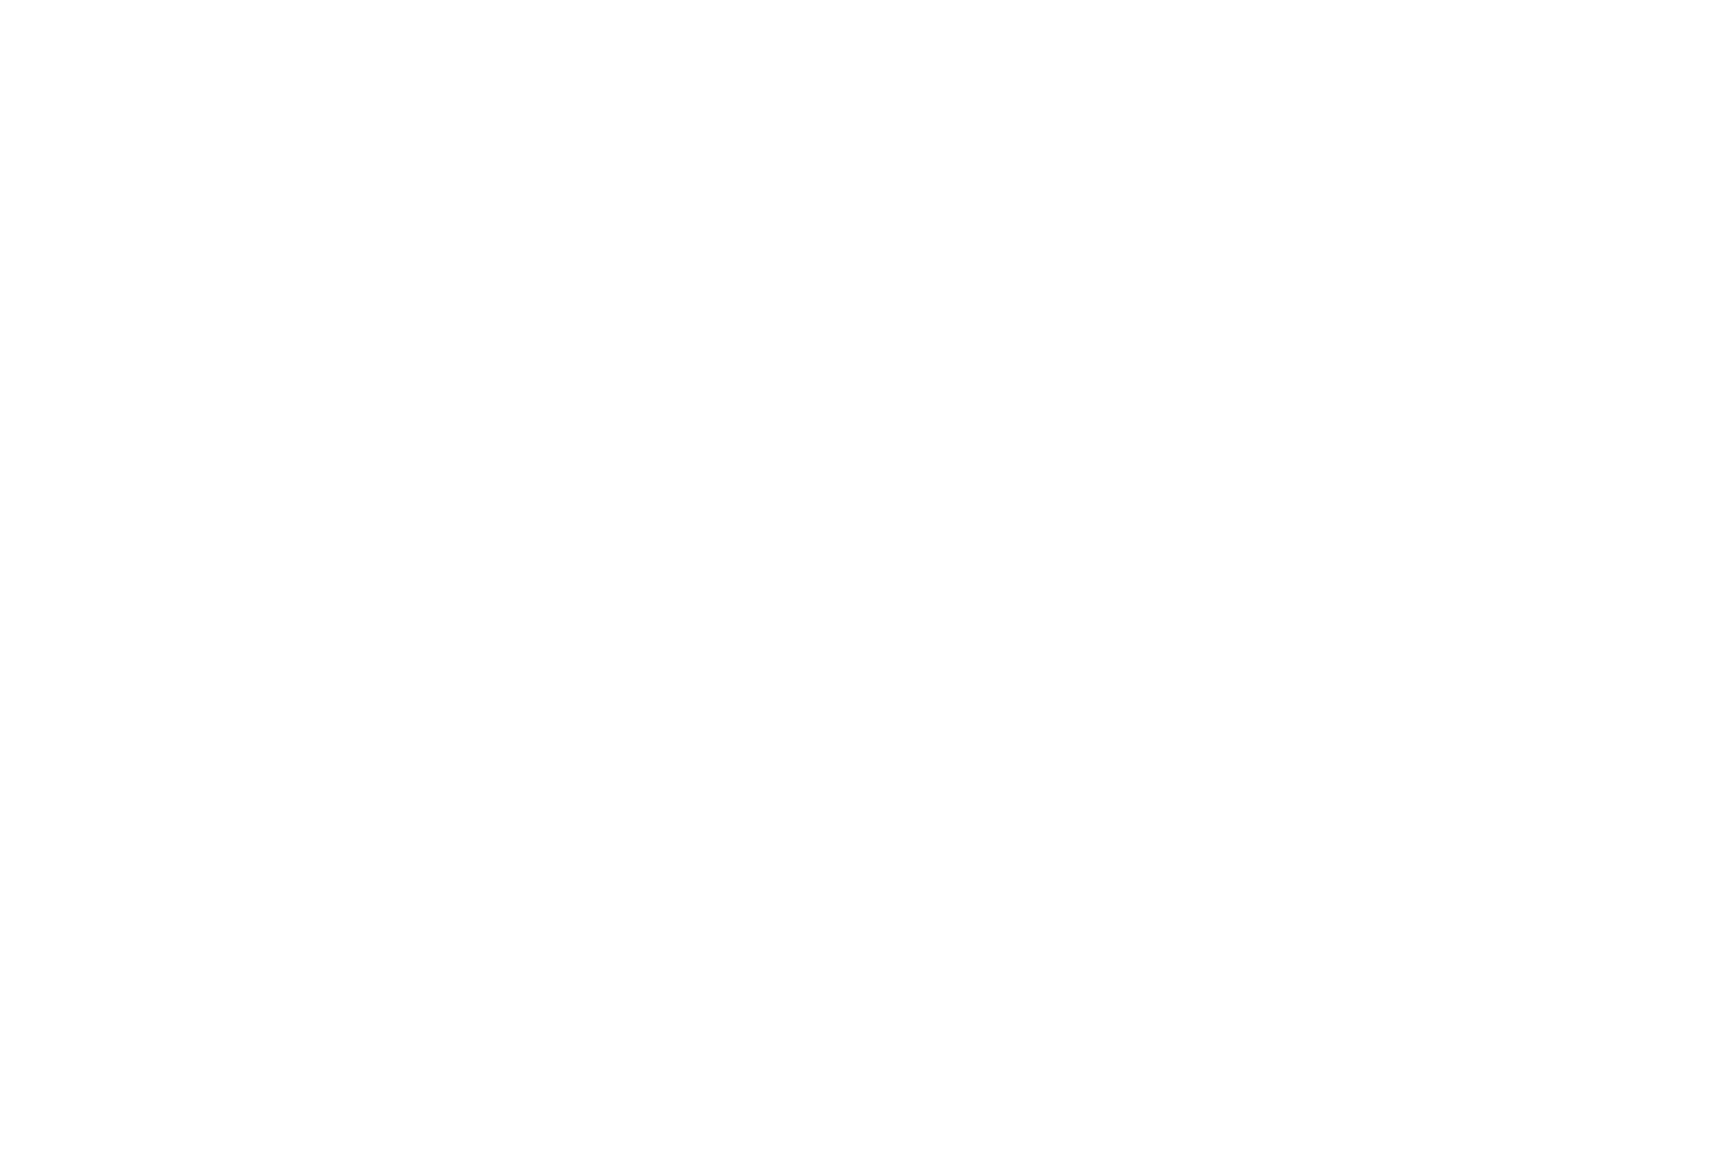 OFFICIAL SELECTION - Indie Fest USA Film Festival